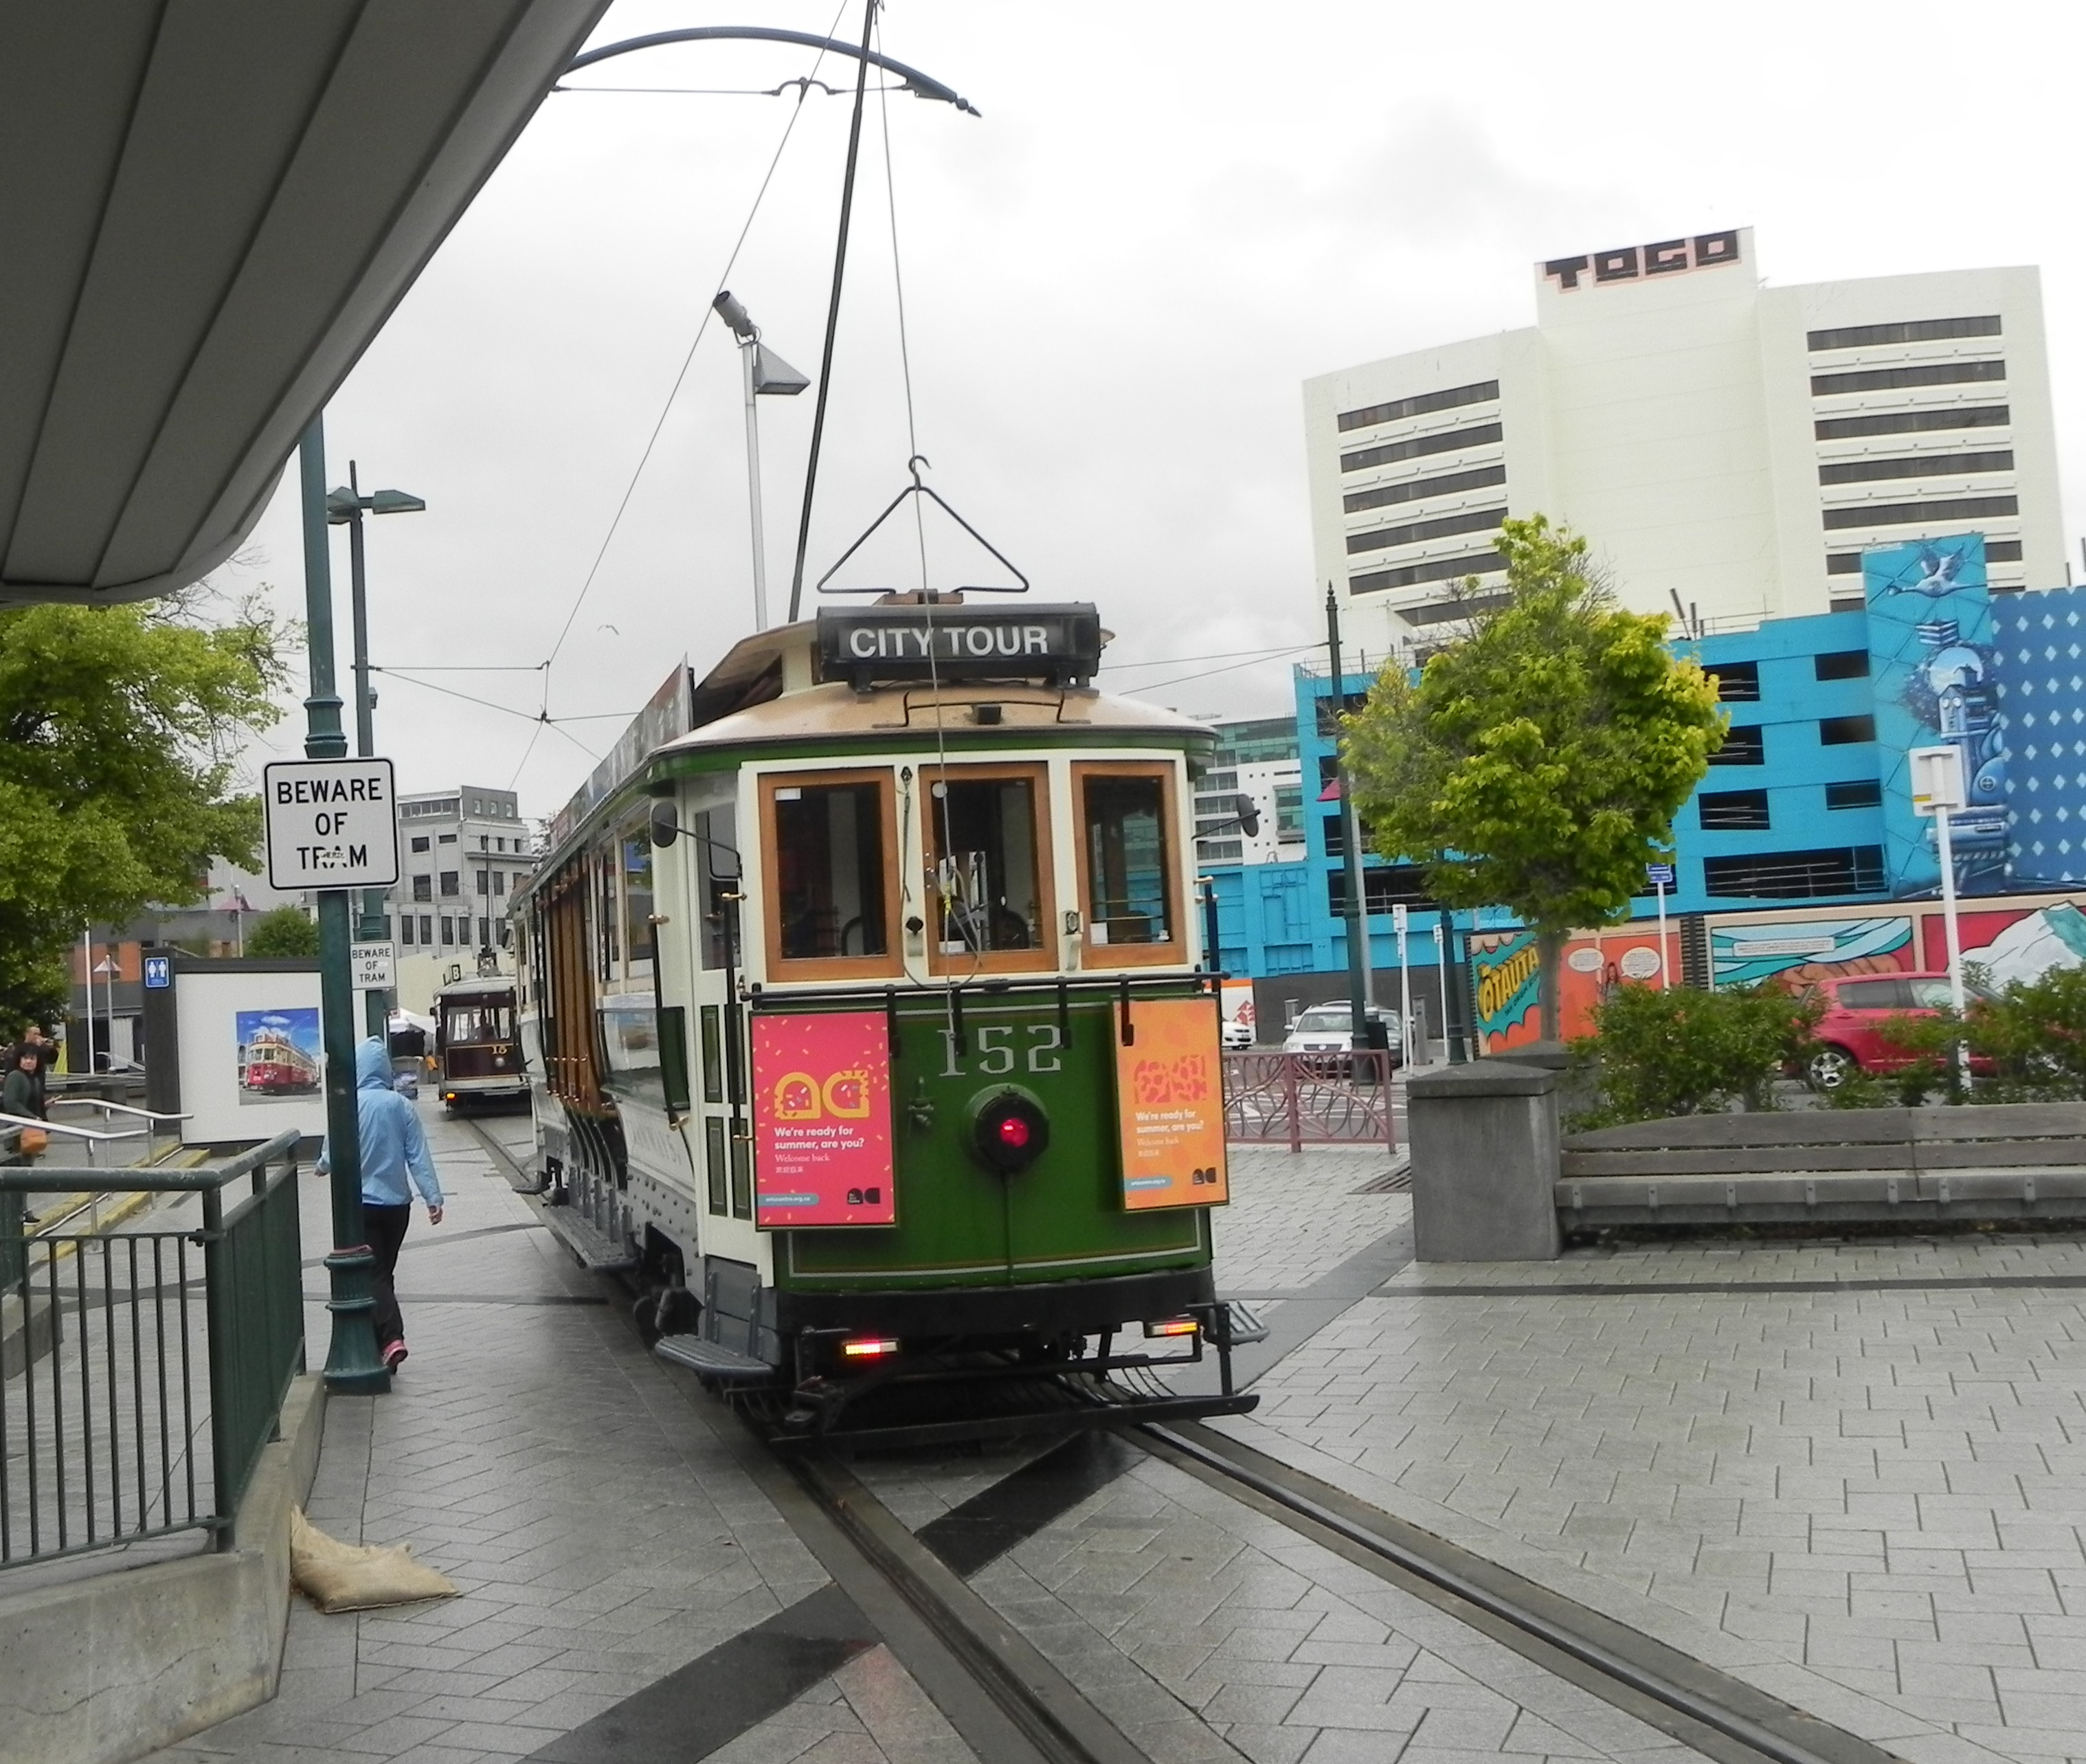 Christchurch tramway city tour